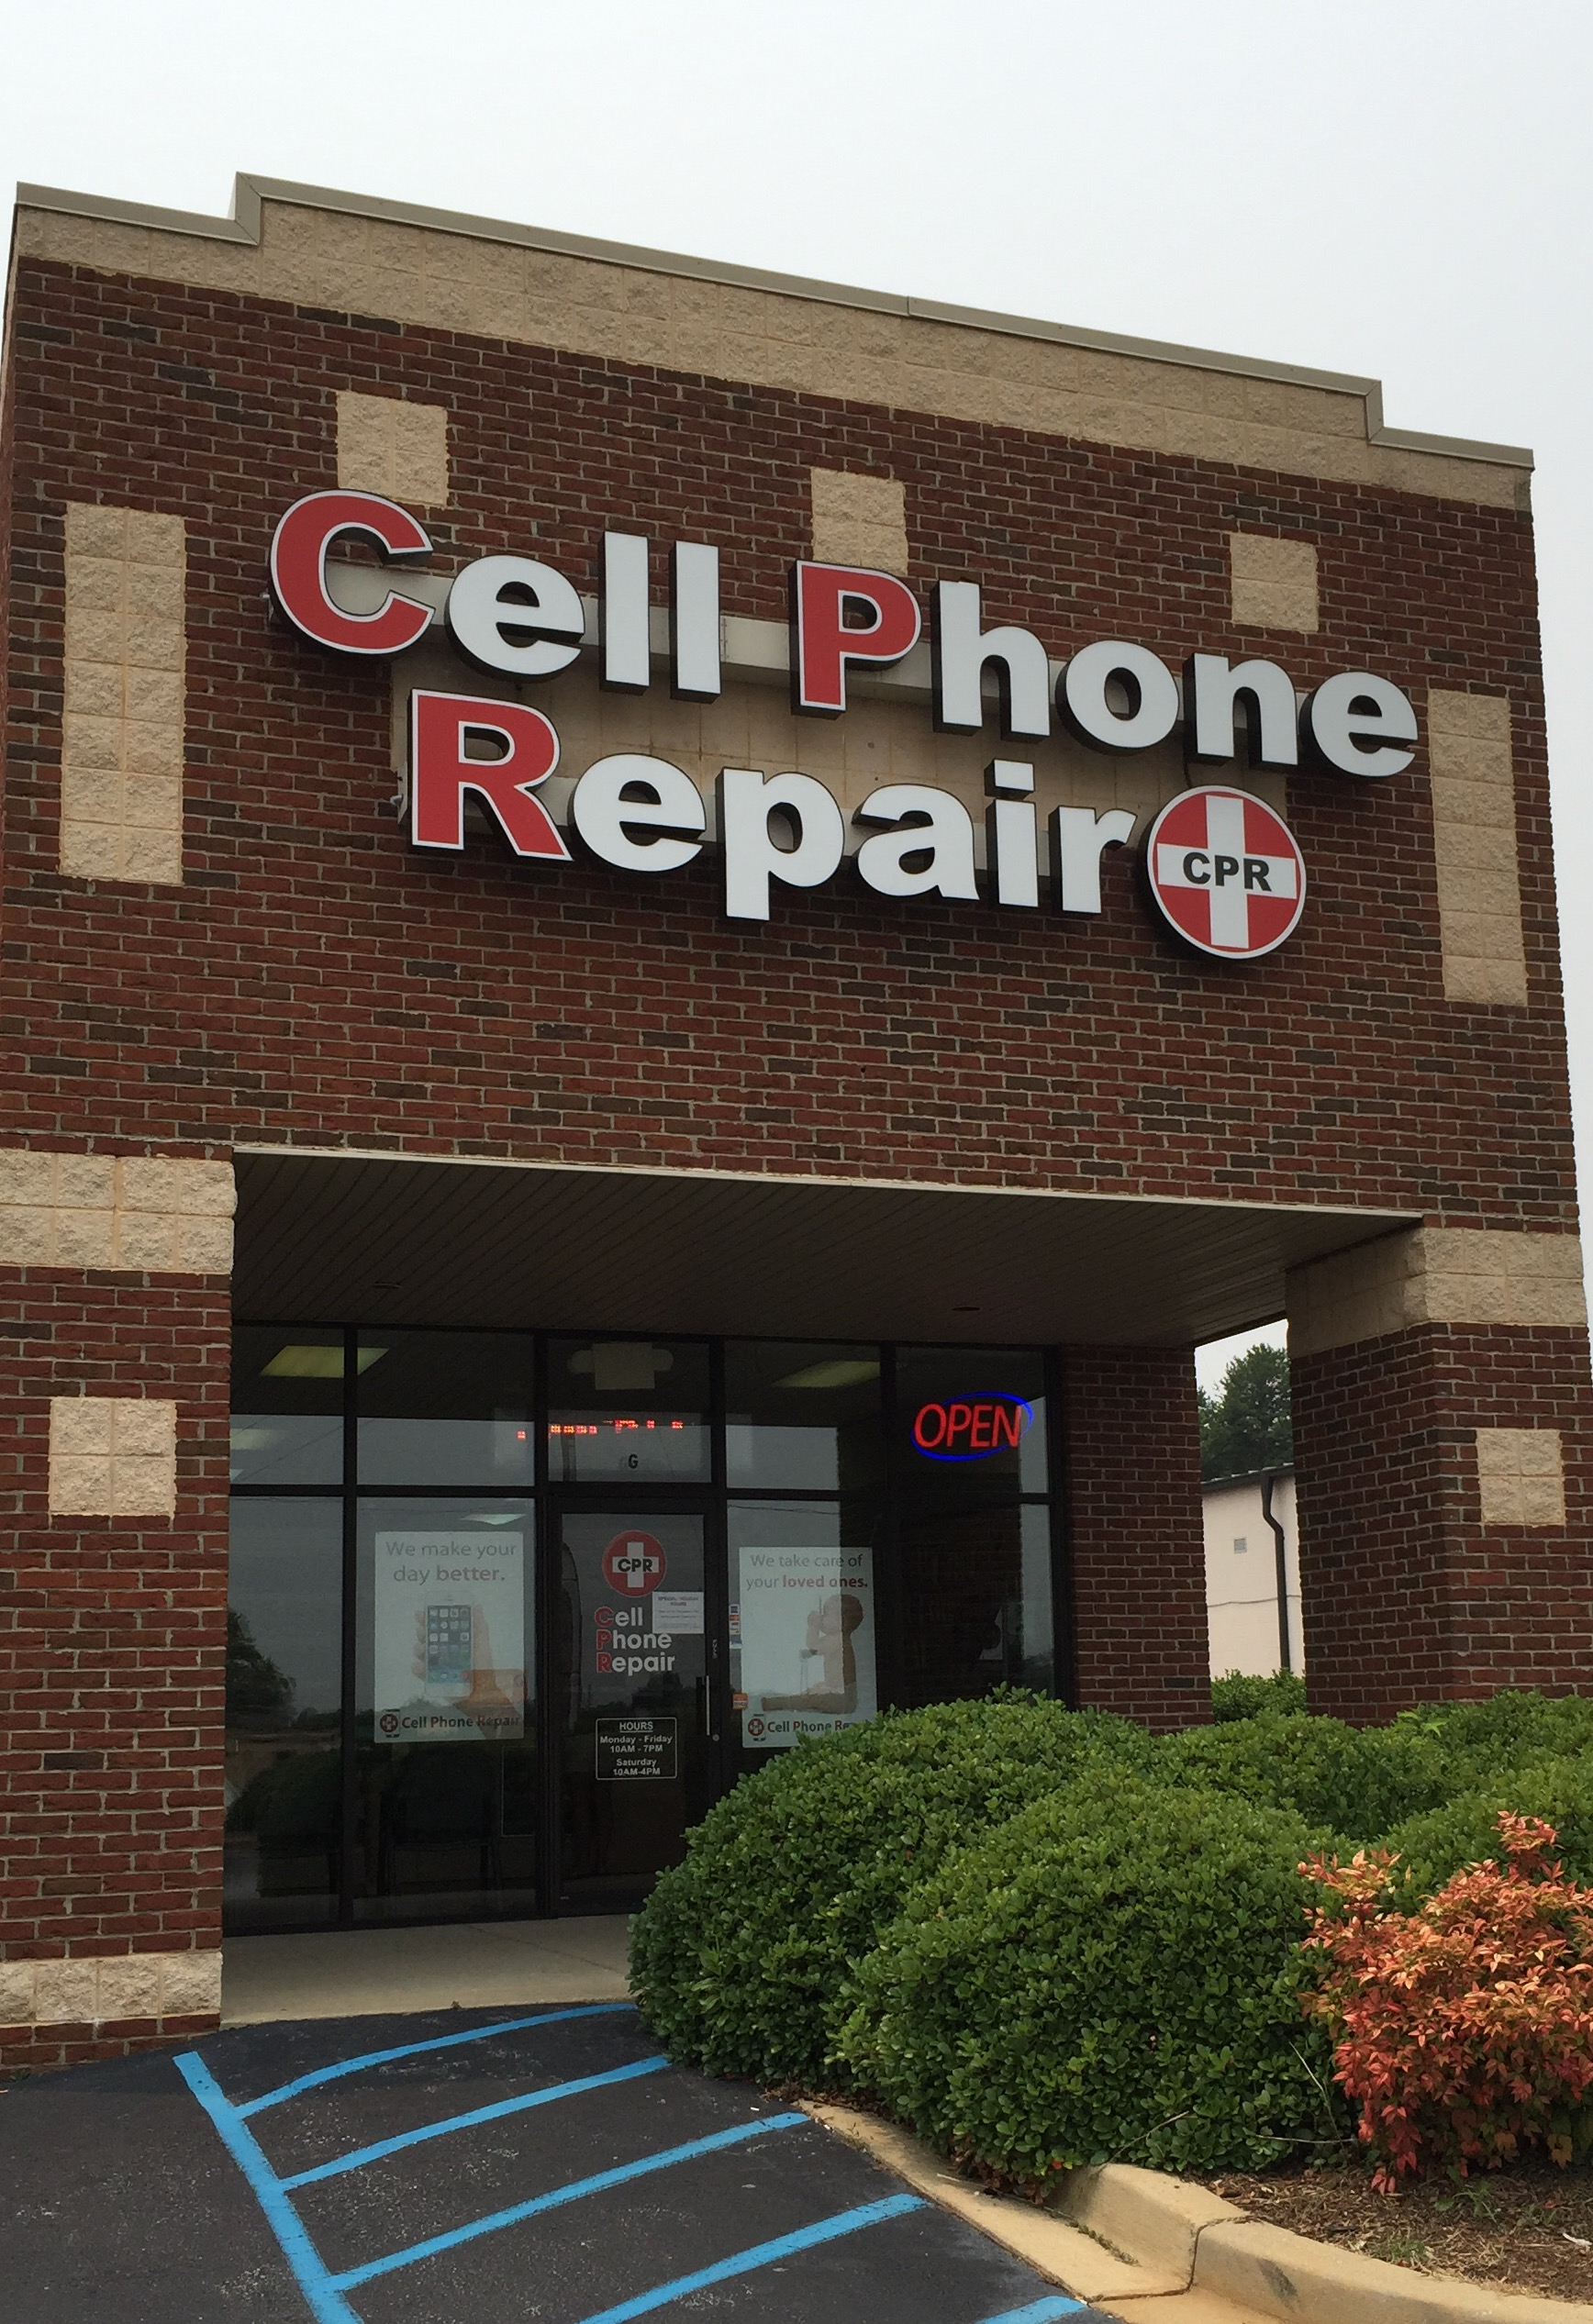 Cpr Cell Phone Repair Greenville 1618 Woodruff Rd Greenville Sc